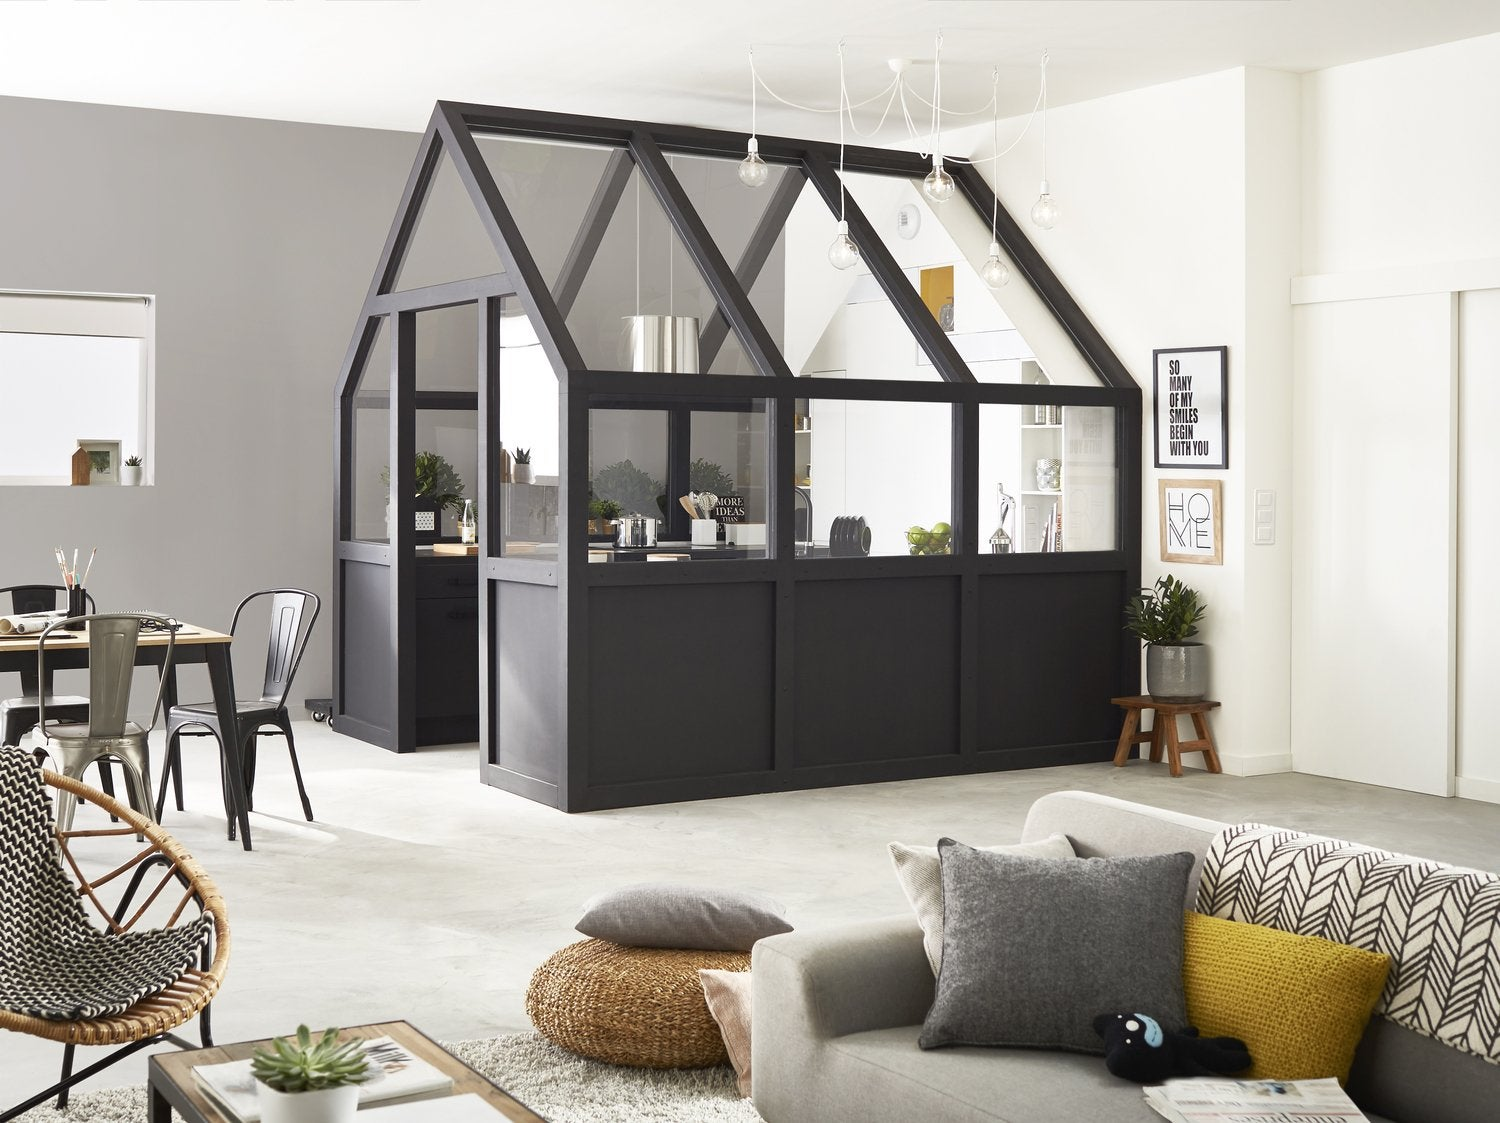 une cabane dans le salon leroy merlin. Black Bedroom Furniture Sets. Home Design Ideas